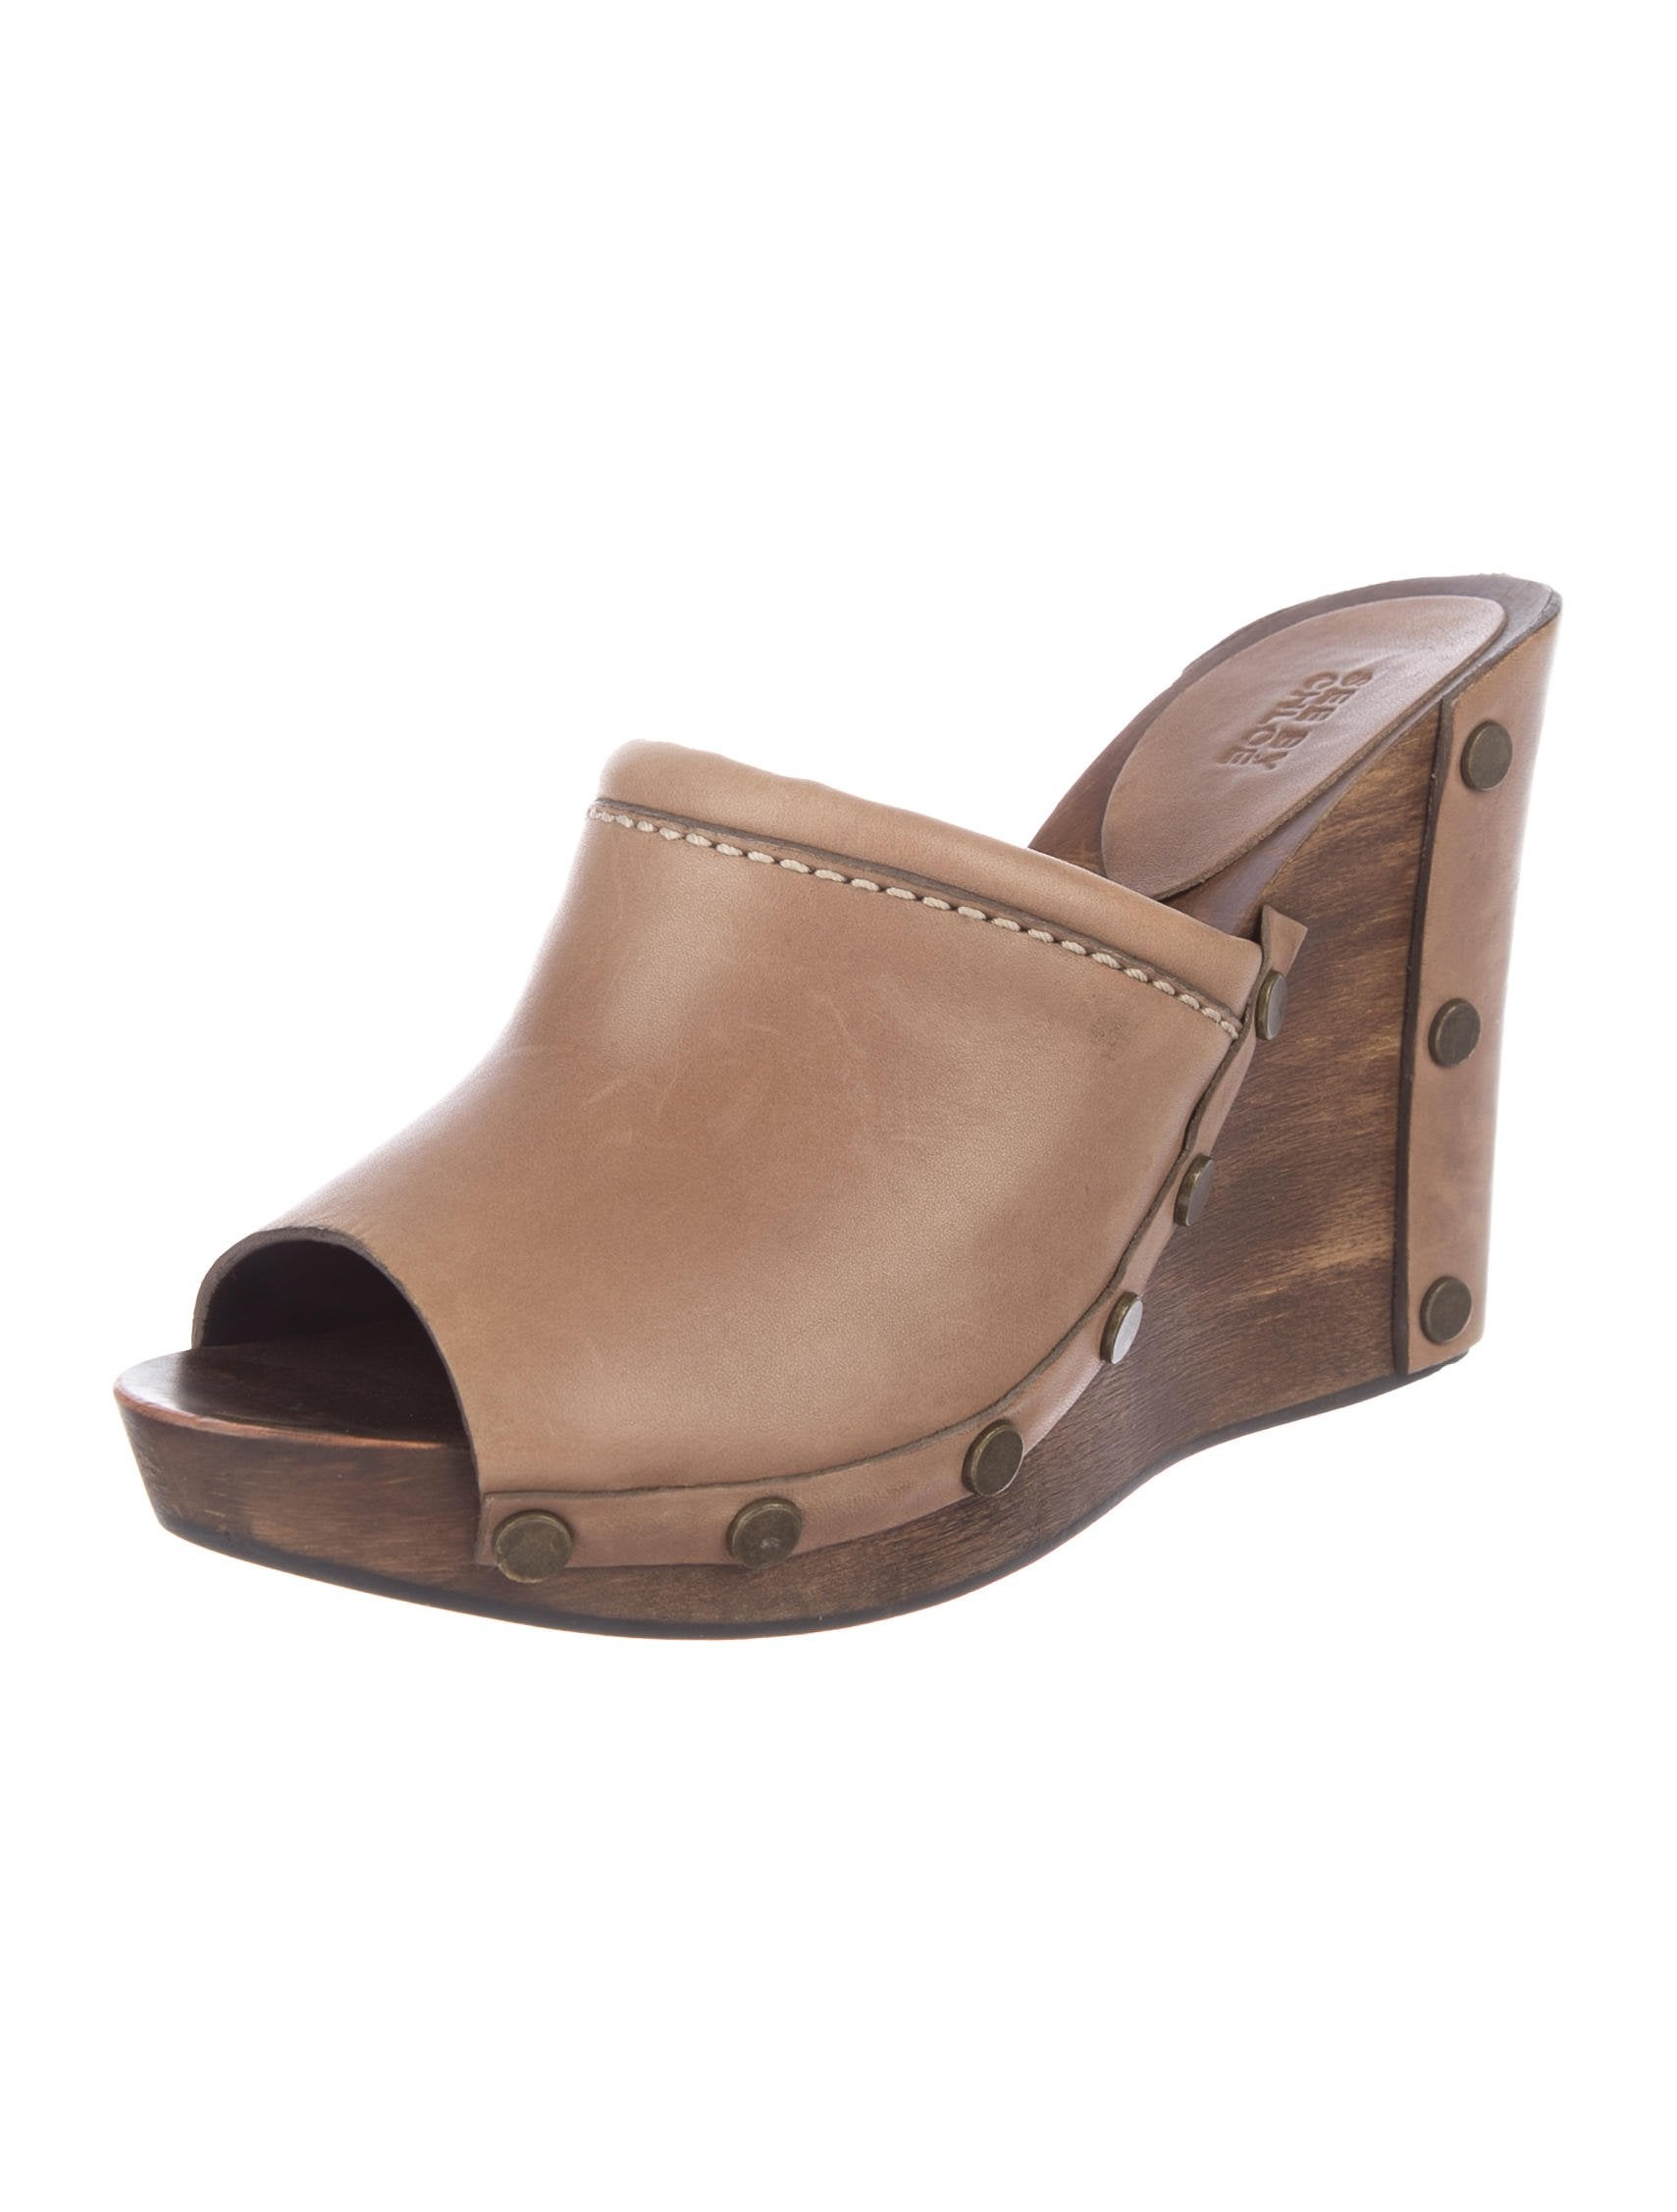 See by Chloé Leather Side Wedges free shipping with mastercard P6XGthQG